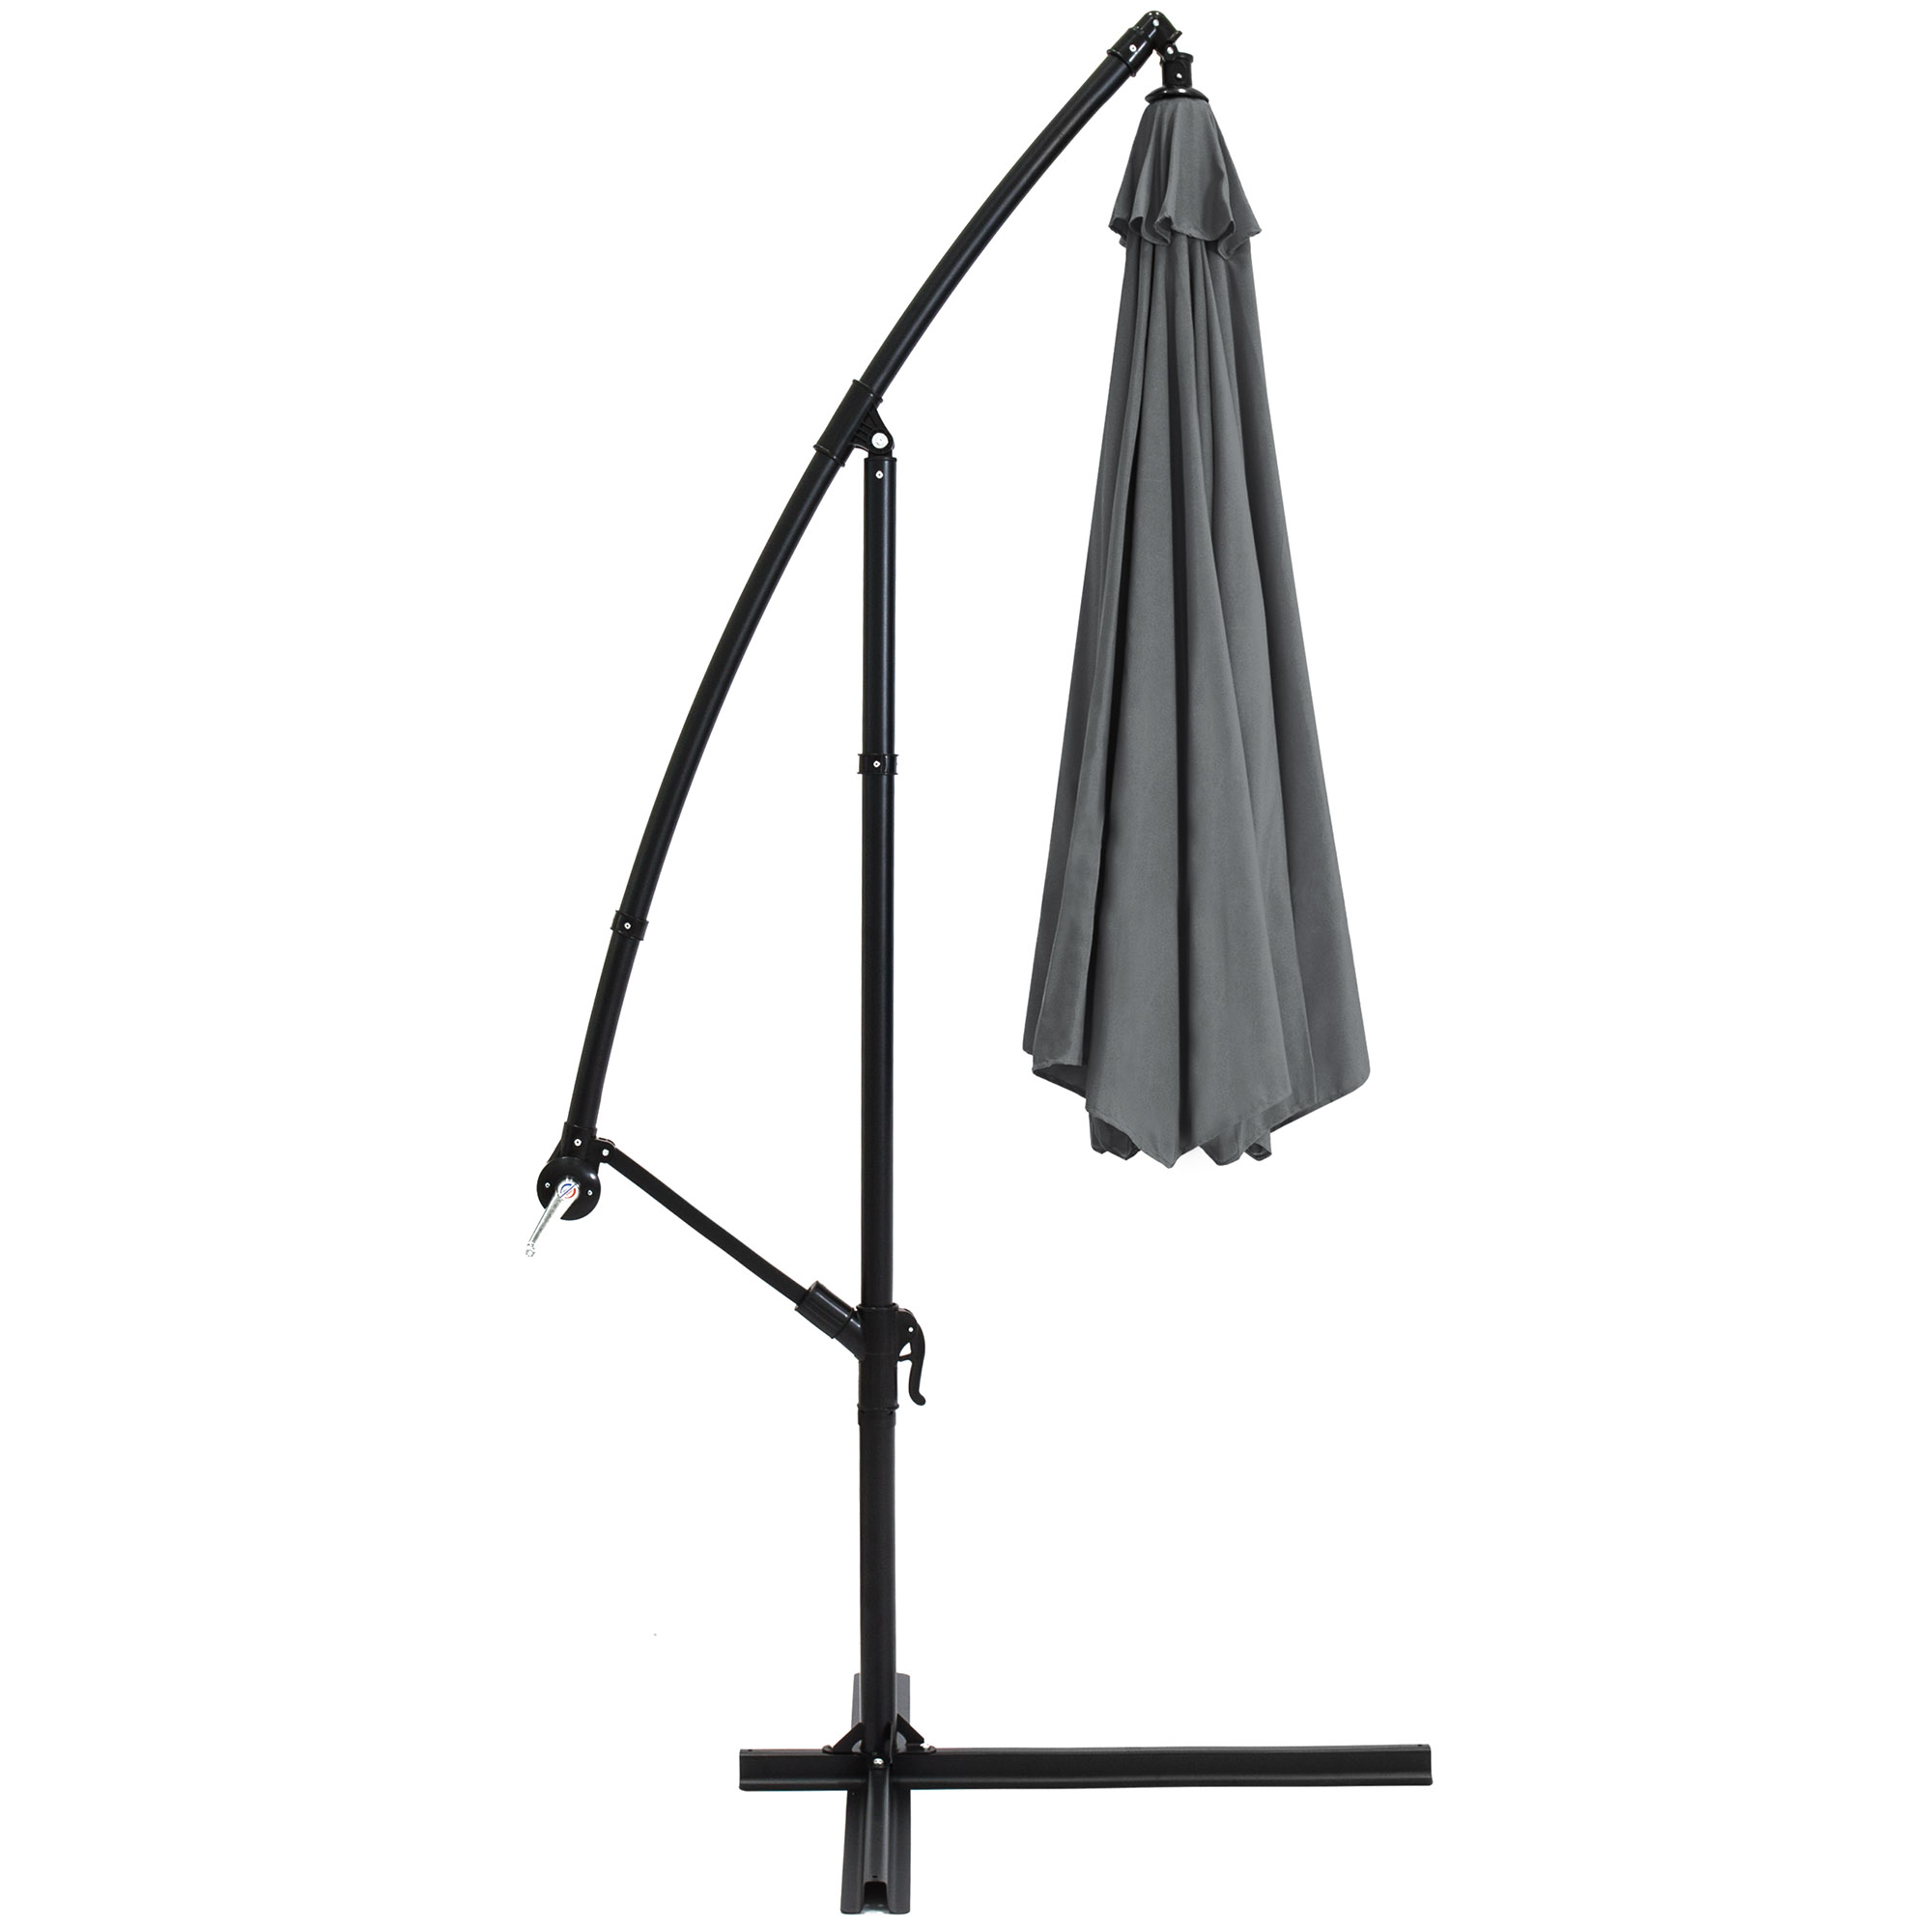 BCP-10ft-Offset-Hanging-Market-Patio-Umbrella-w-Tilt-Adjustment-Hand-Crank thumbnail 27